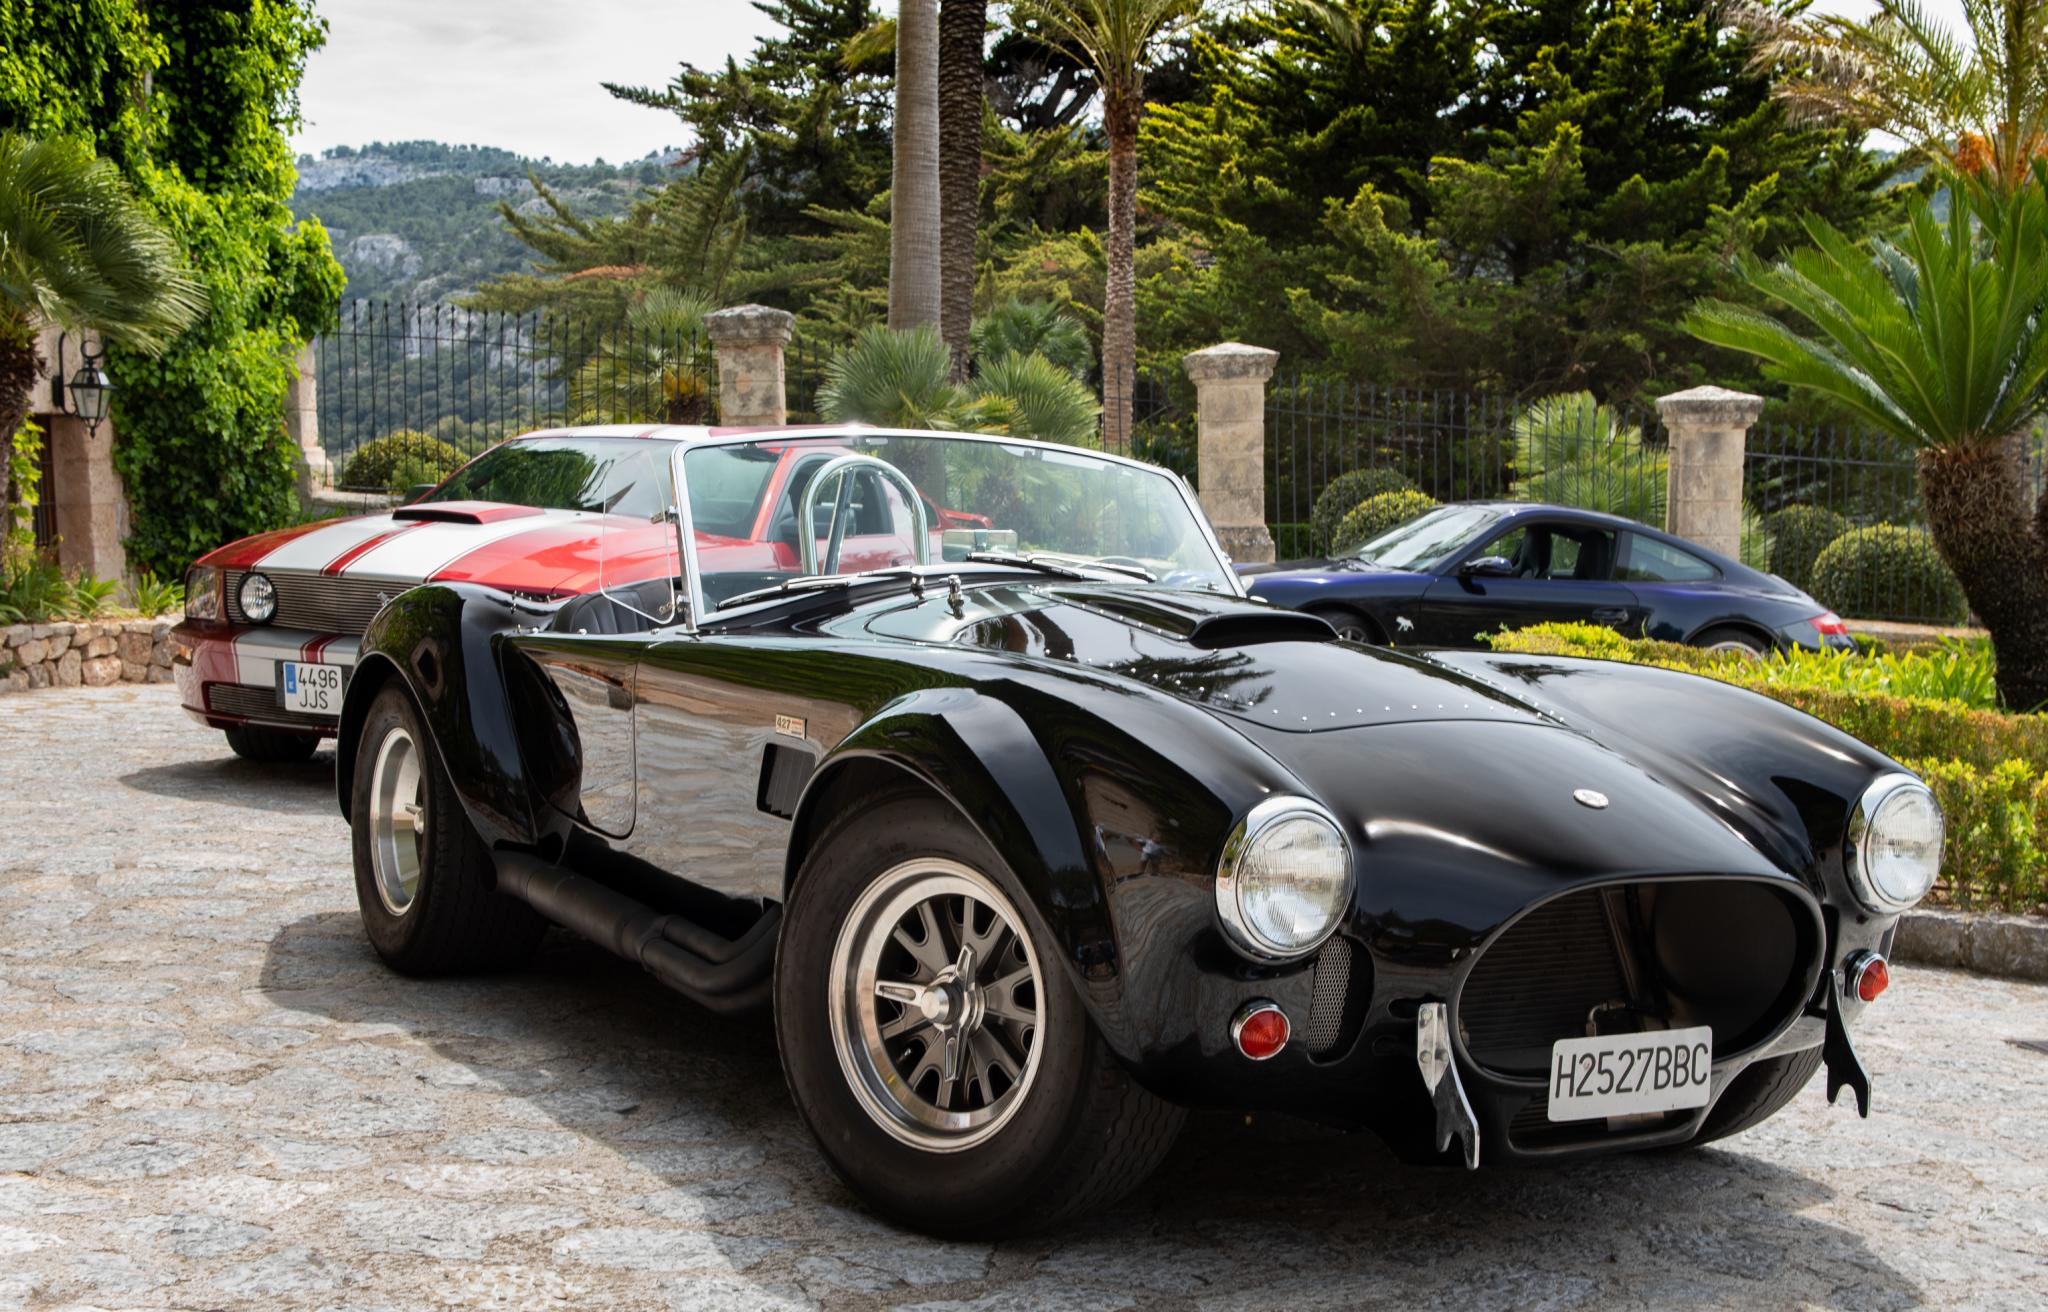 Cobra in good company, out for a Sunday morning run in the Tramuntana